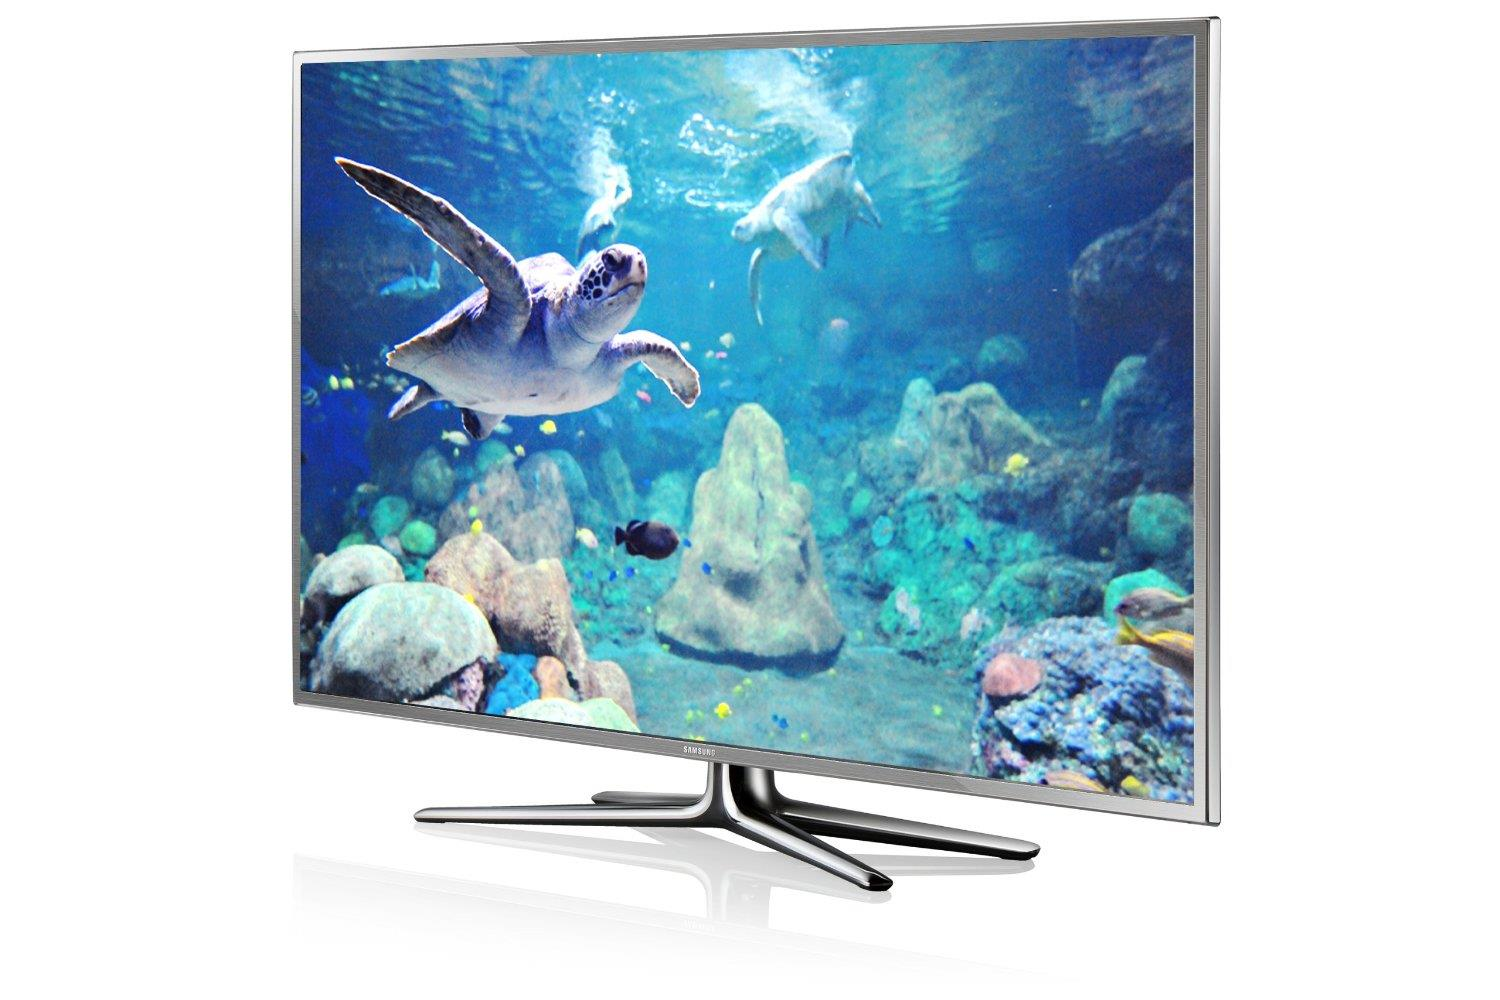 Samsung UE40ES6900U 40 Inch 3D Smart LED TV